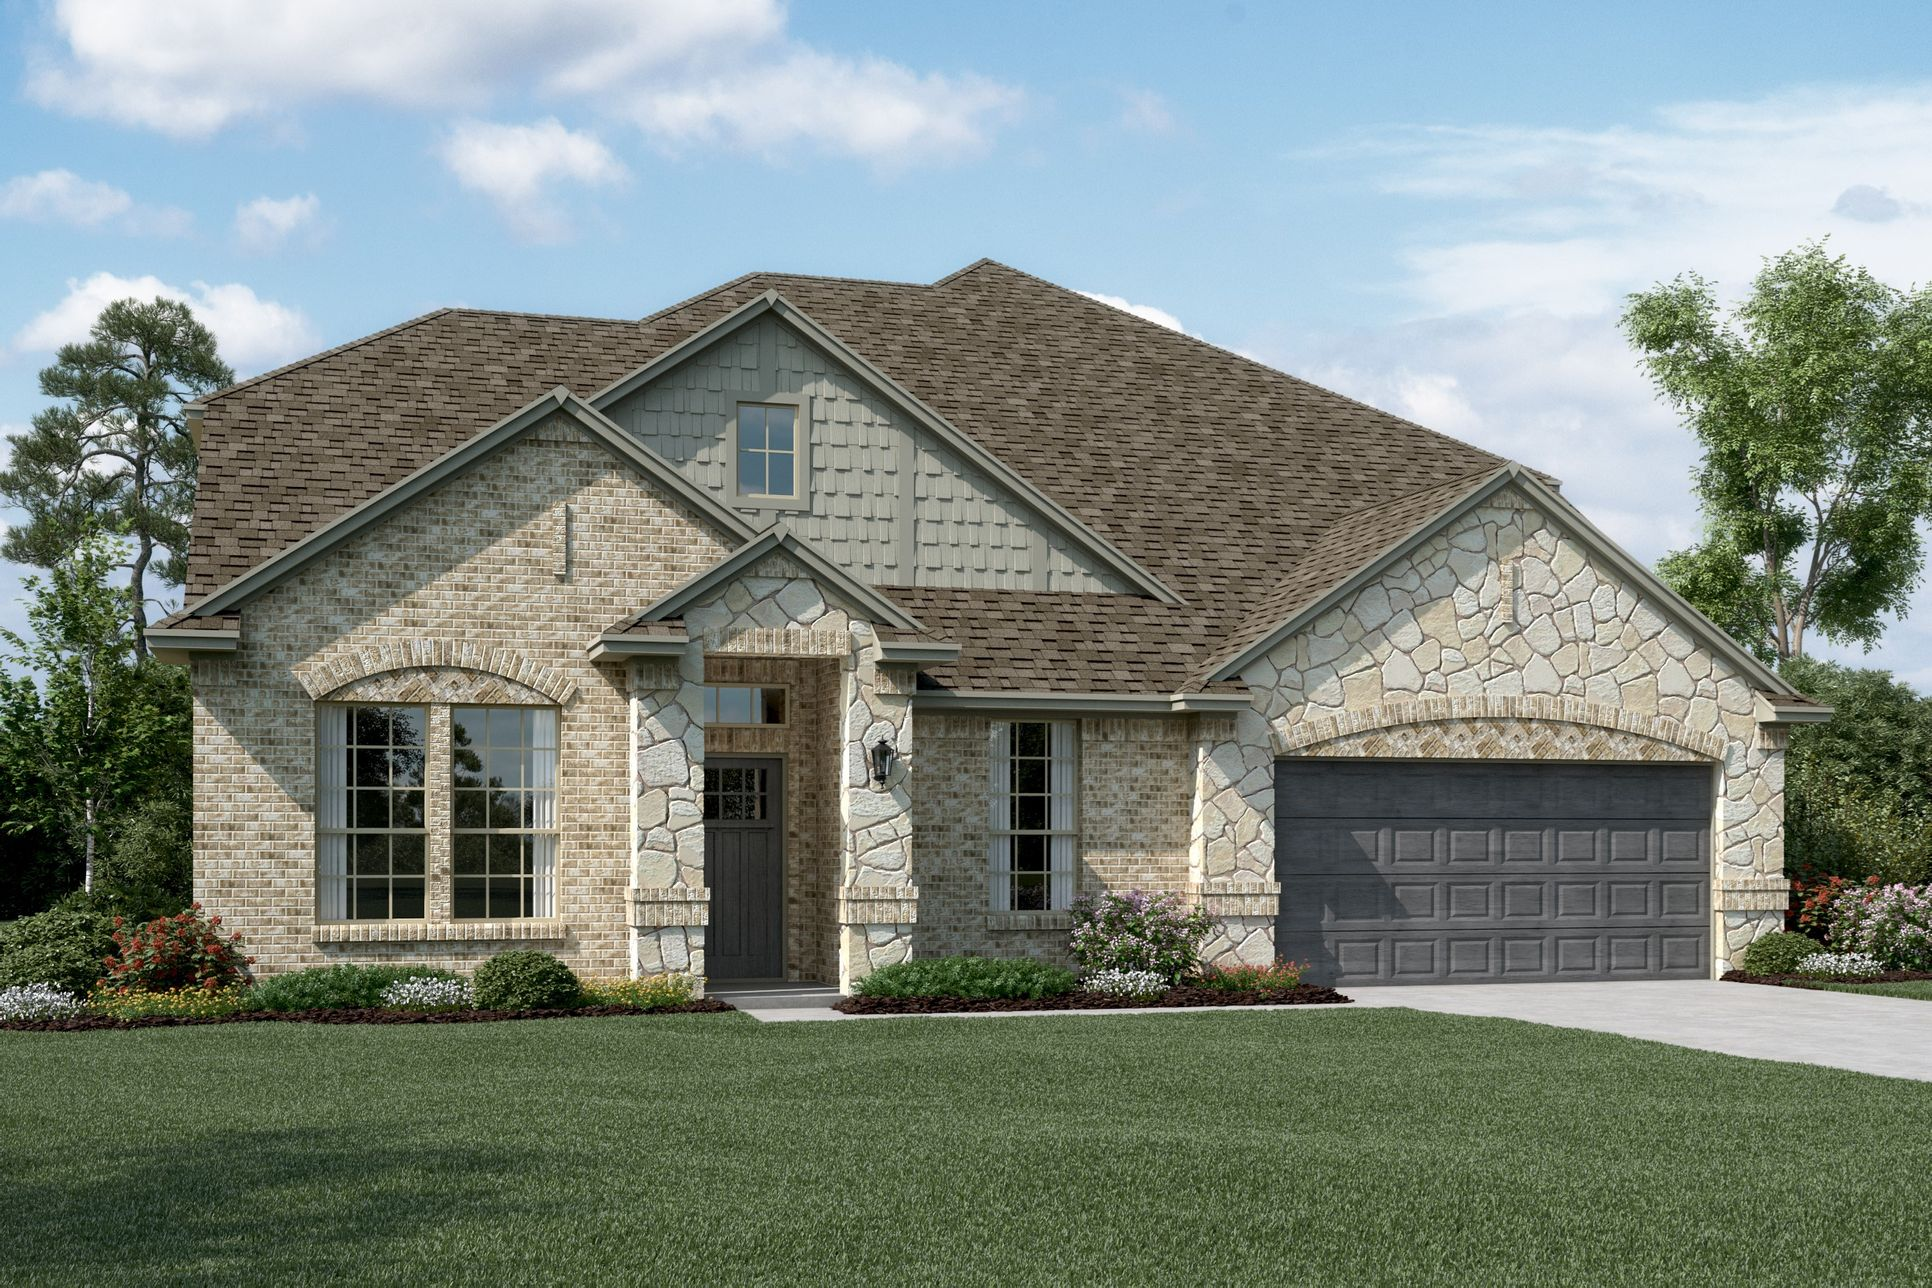 Exterior:Westchester II - C - Shown with stone